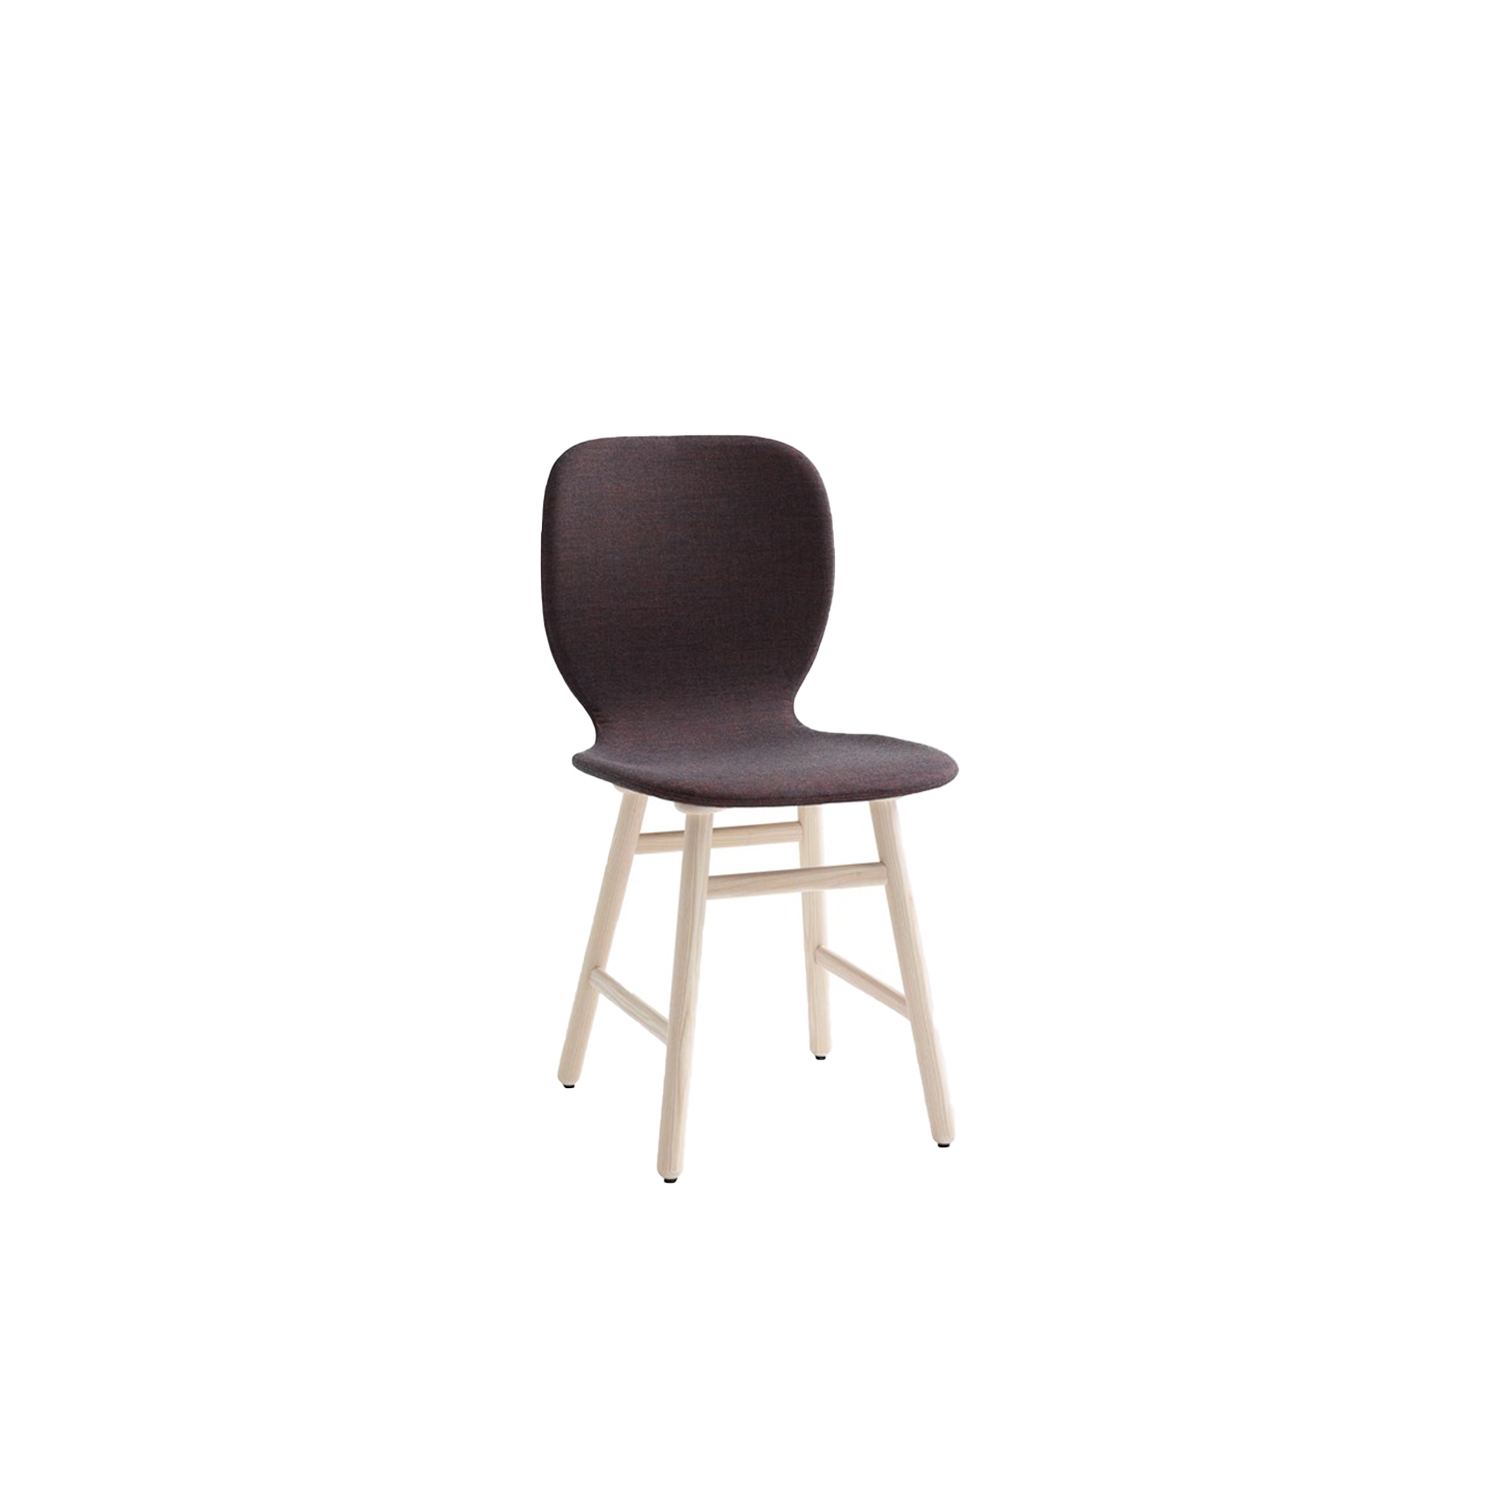 Shell Upholstered Chair - The underlying thinking behind the design has been to find the right balance between the distinctive lines of the stool and a chair that projects its own unique identity. The aim has been to retain the subtle curves of the seat shell and the construction of the frame with its slightly angled legs. The chair provides a comfortable seating angle and an ideal degree of flexibility that follows the contours of the body and responds to its movements.  Depending on how you choose to combine seat shell, textiles and surface finish, you can change the personality of Shell to blend seamlessly into its surroundings. Such versatility means that Shell can be used in virtually any setting you wish. The chair makes a handsome match with many of Karl Andersson & Söner's tables and, thanks to its comfort and sleek lines, Shell is an ideal choice of chair in canteens, lunchrooms, restaurants and cafés. The chair is manufactured in oak, birch, ash, standard colours, standard stains on ash and white glazed oak or ash. Choose an all-wood chair or versions with a covered seat, or fully upholstered in fabric or leather. Cold-cured foam padding. Please enquire for details of other finish. | Matter of Stuff